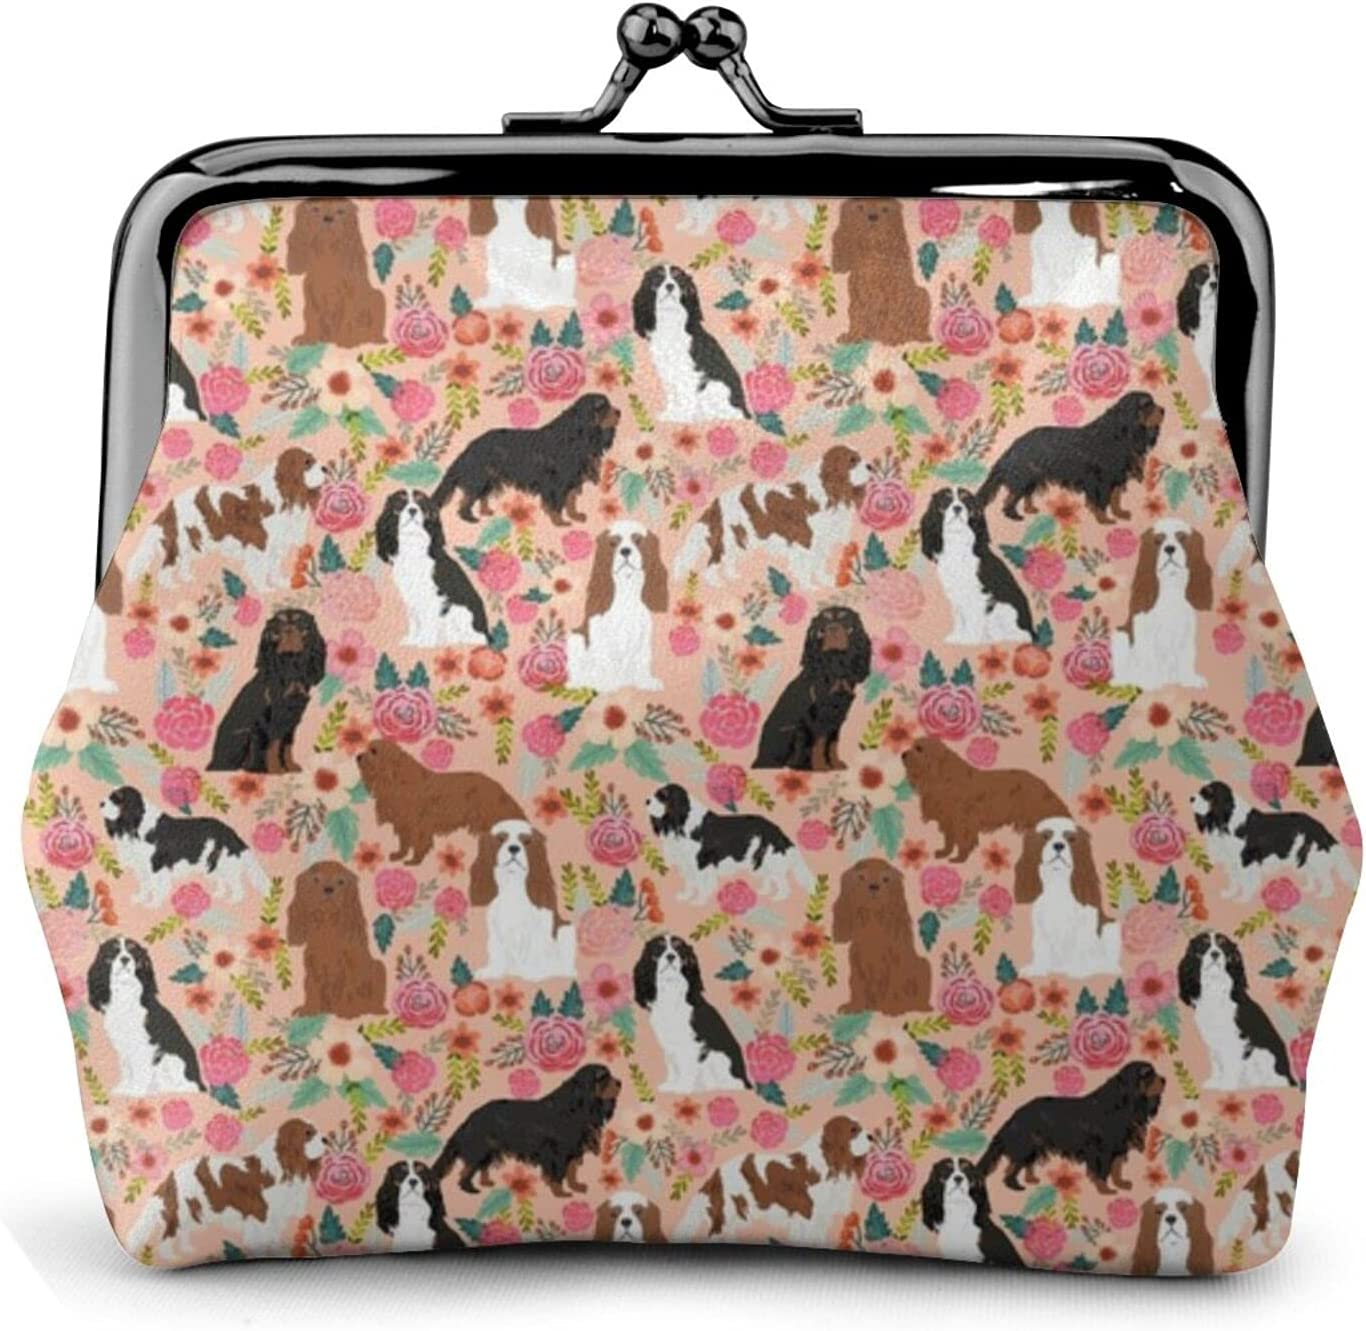 Cavalier King Charles 1443 Coin Purse Retro Money Pouch with Kiss-lock Buckle Small Wallet for Women and Girls